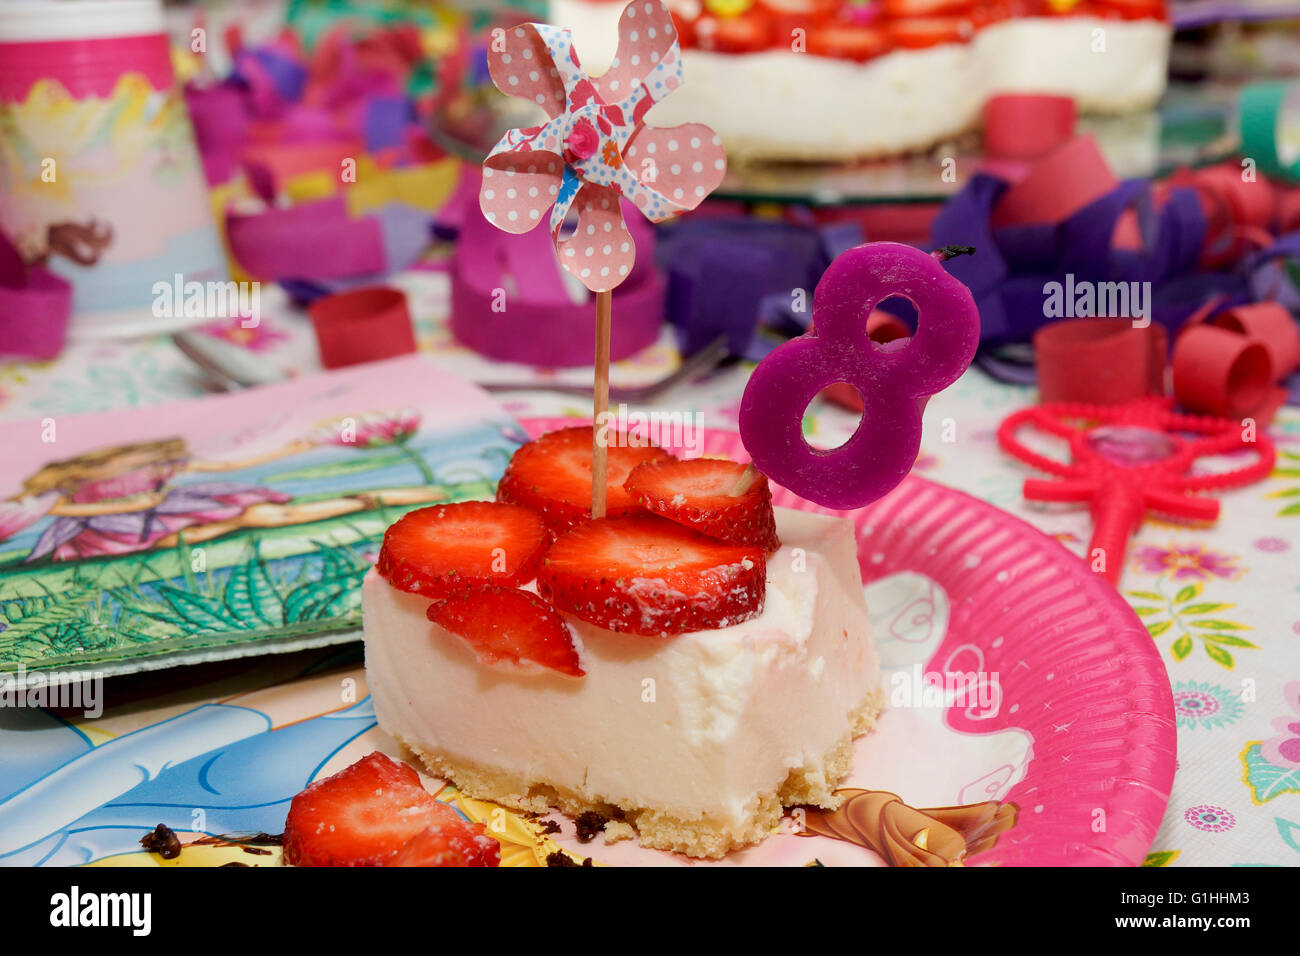 Birthday Cake For An 8 Year Old Stock Photo 104263939 Alamy